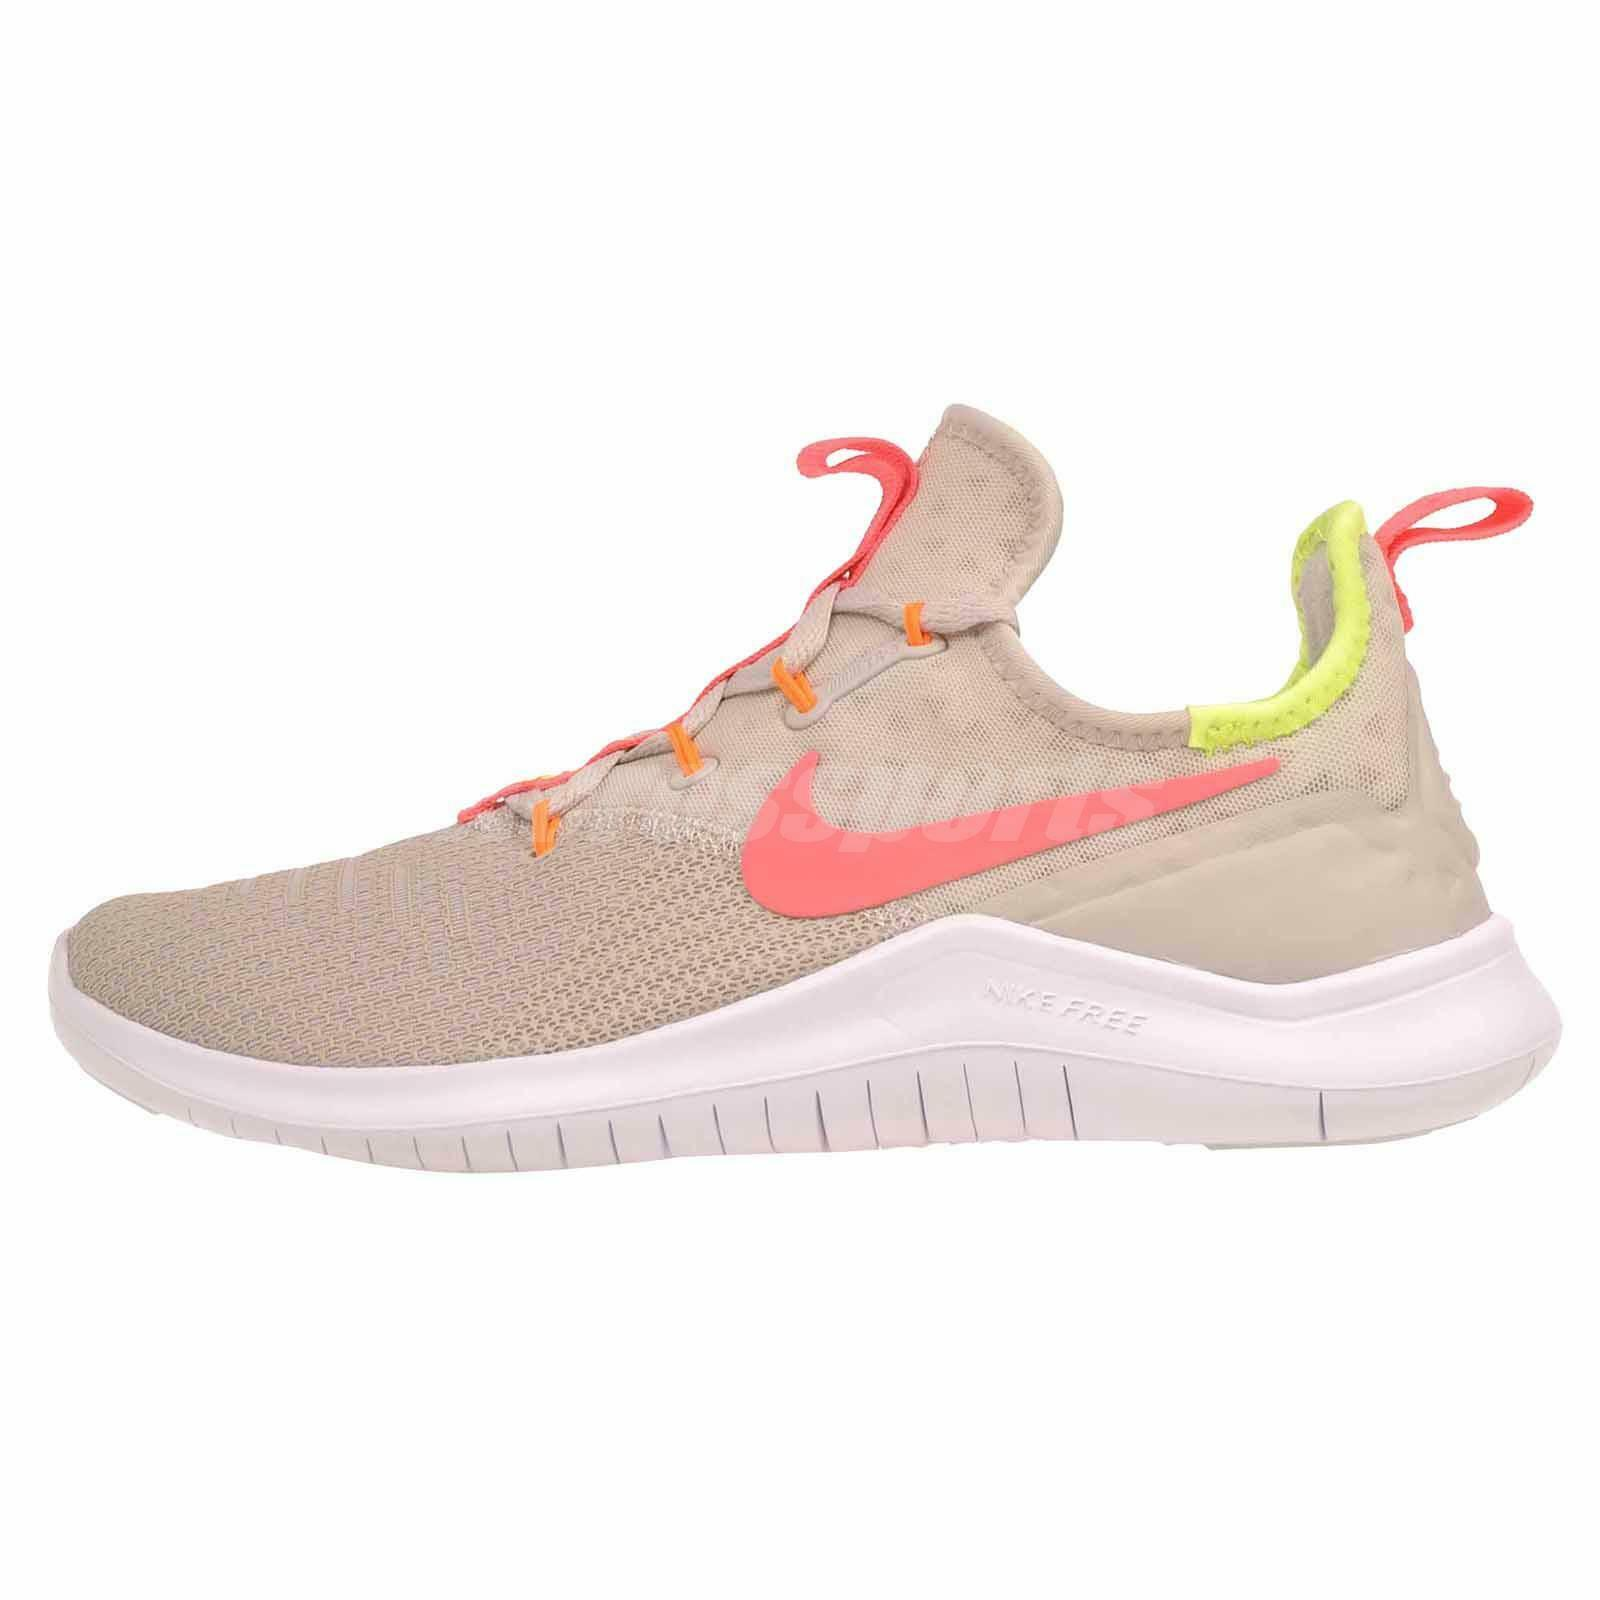 Nike  Wmns Free TR 8 Cross Training shoes Womens Trainers Desert Sand 942888-004  cheapest price